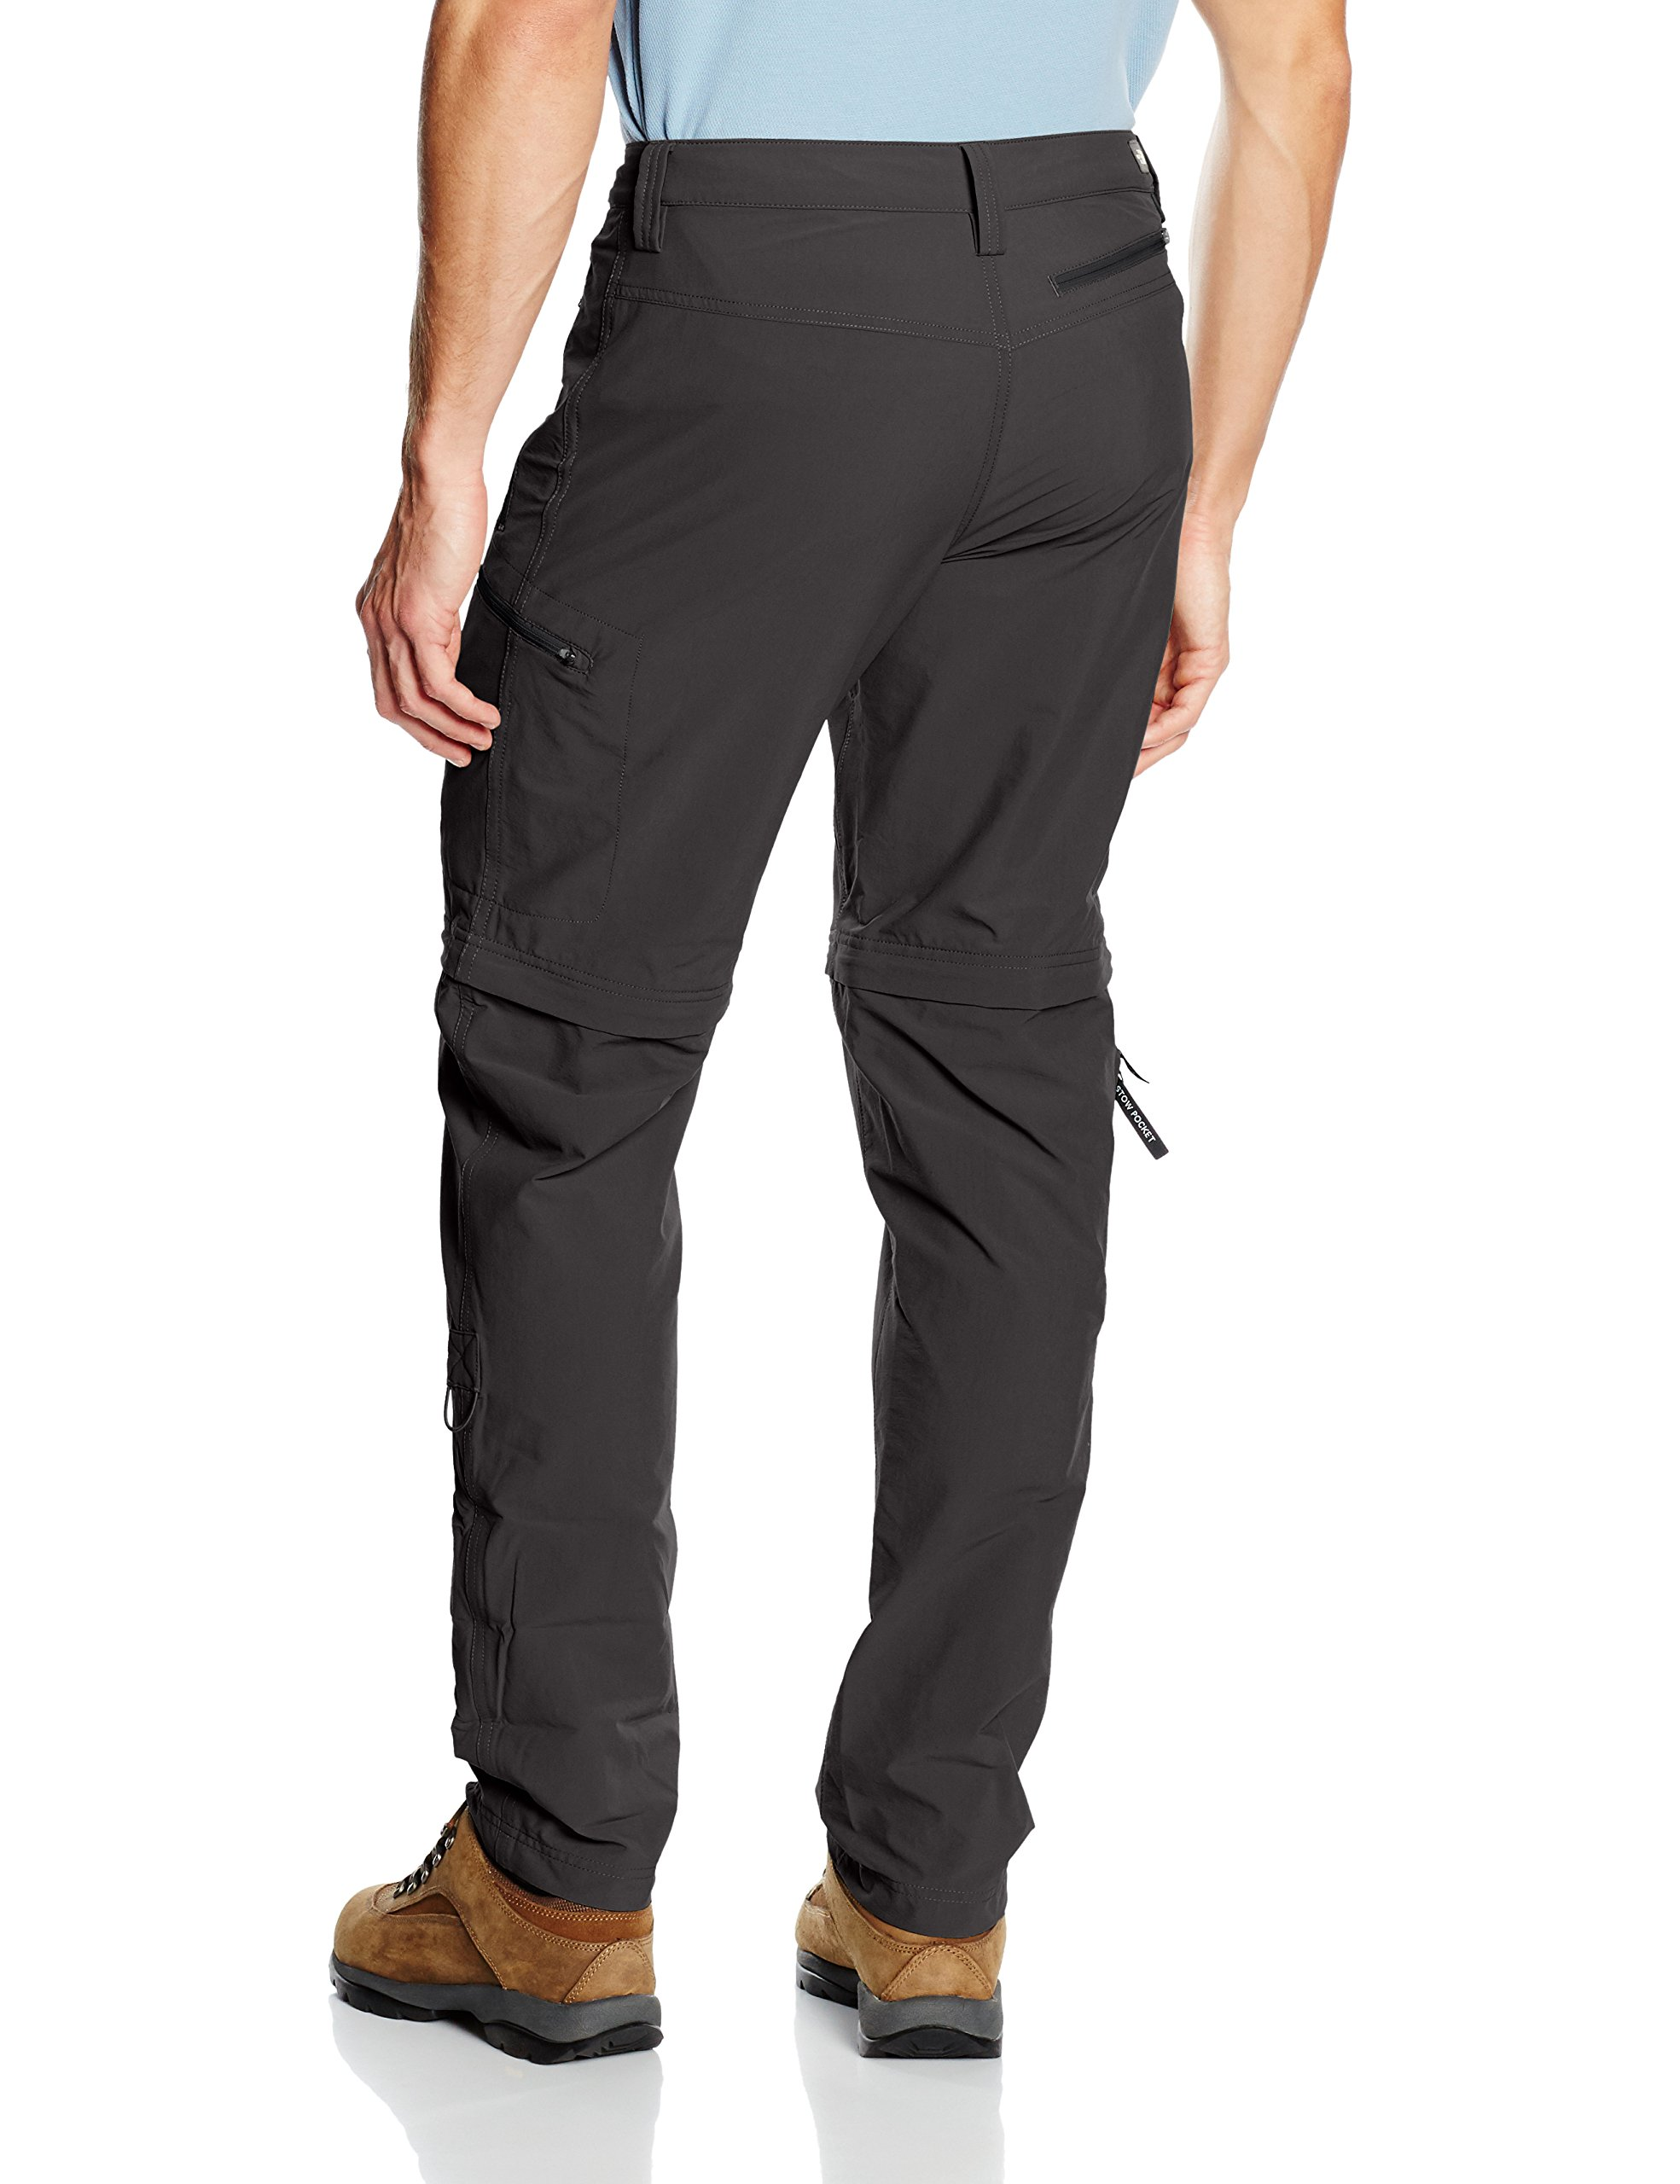 81%2Bkjh5fe4L - The North Face Men's Convertible Hiking Exploration Outdoor Trouser